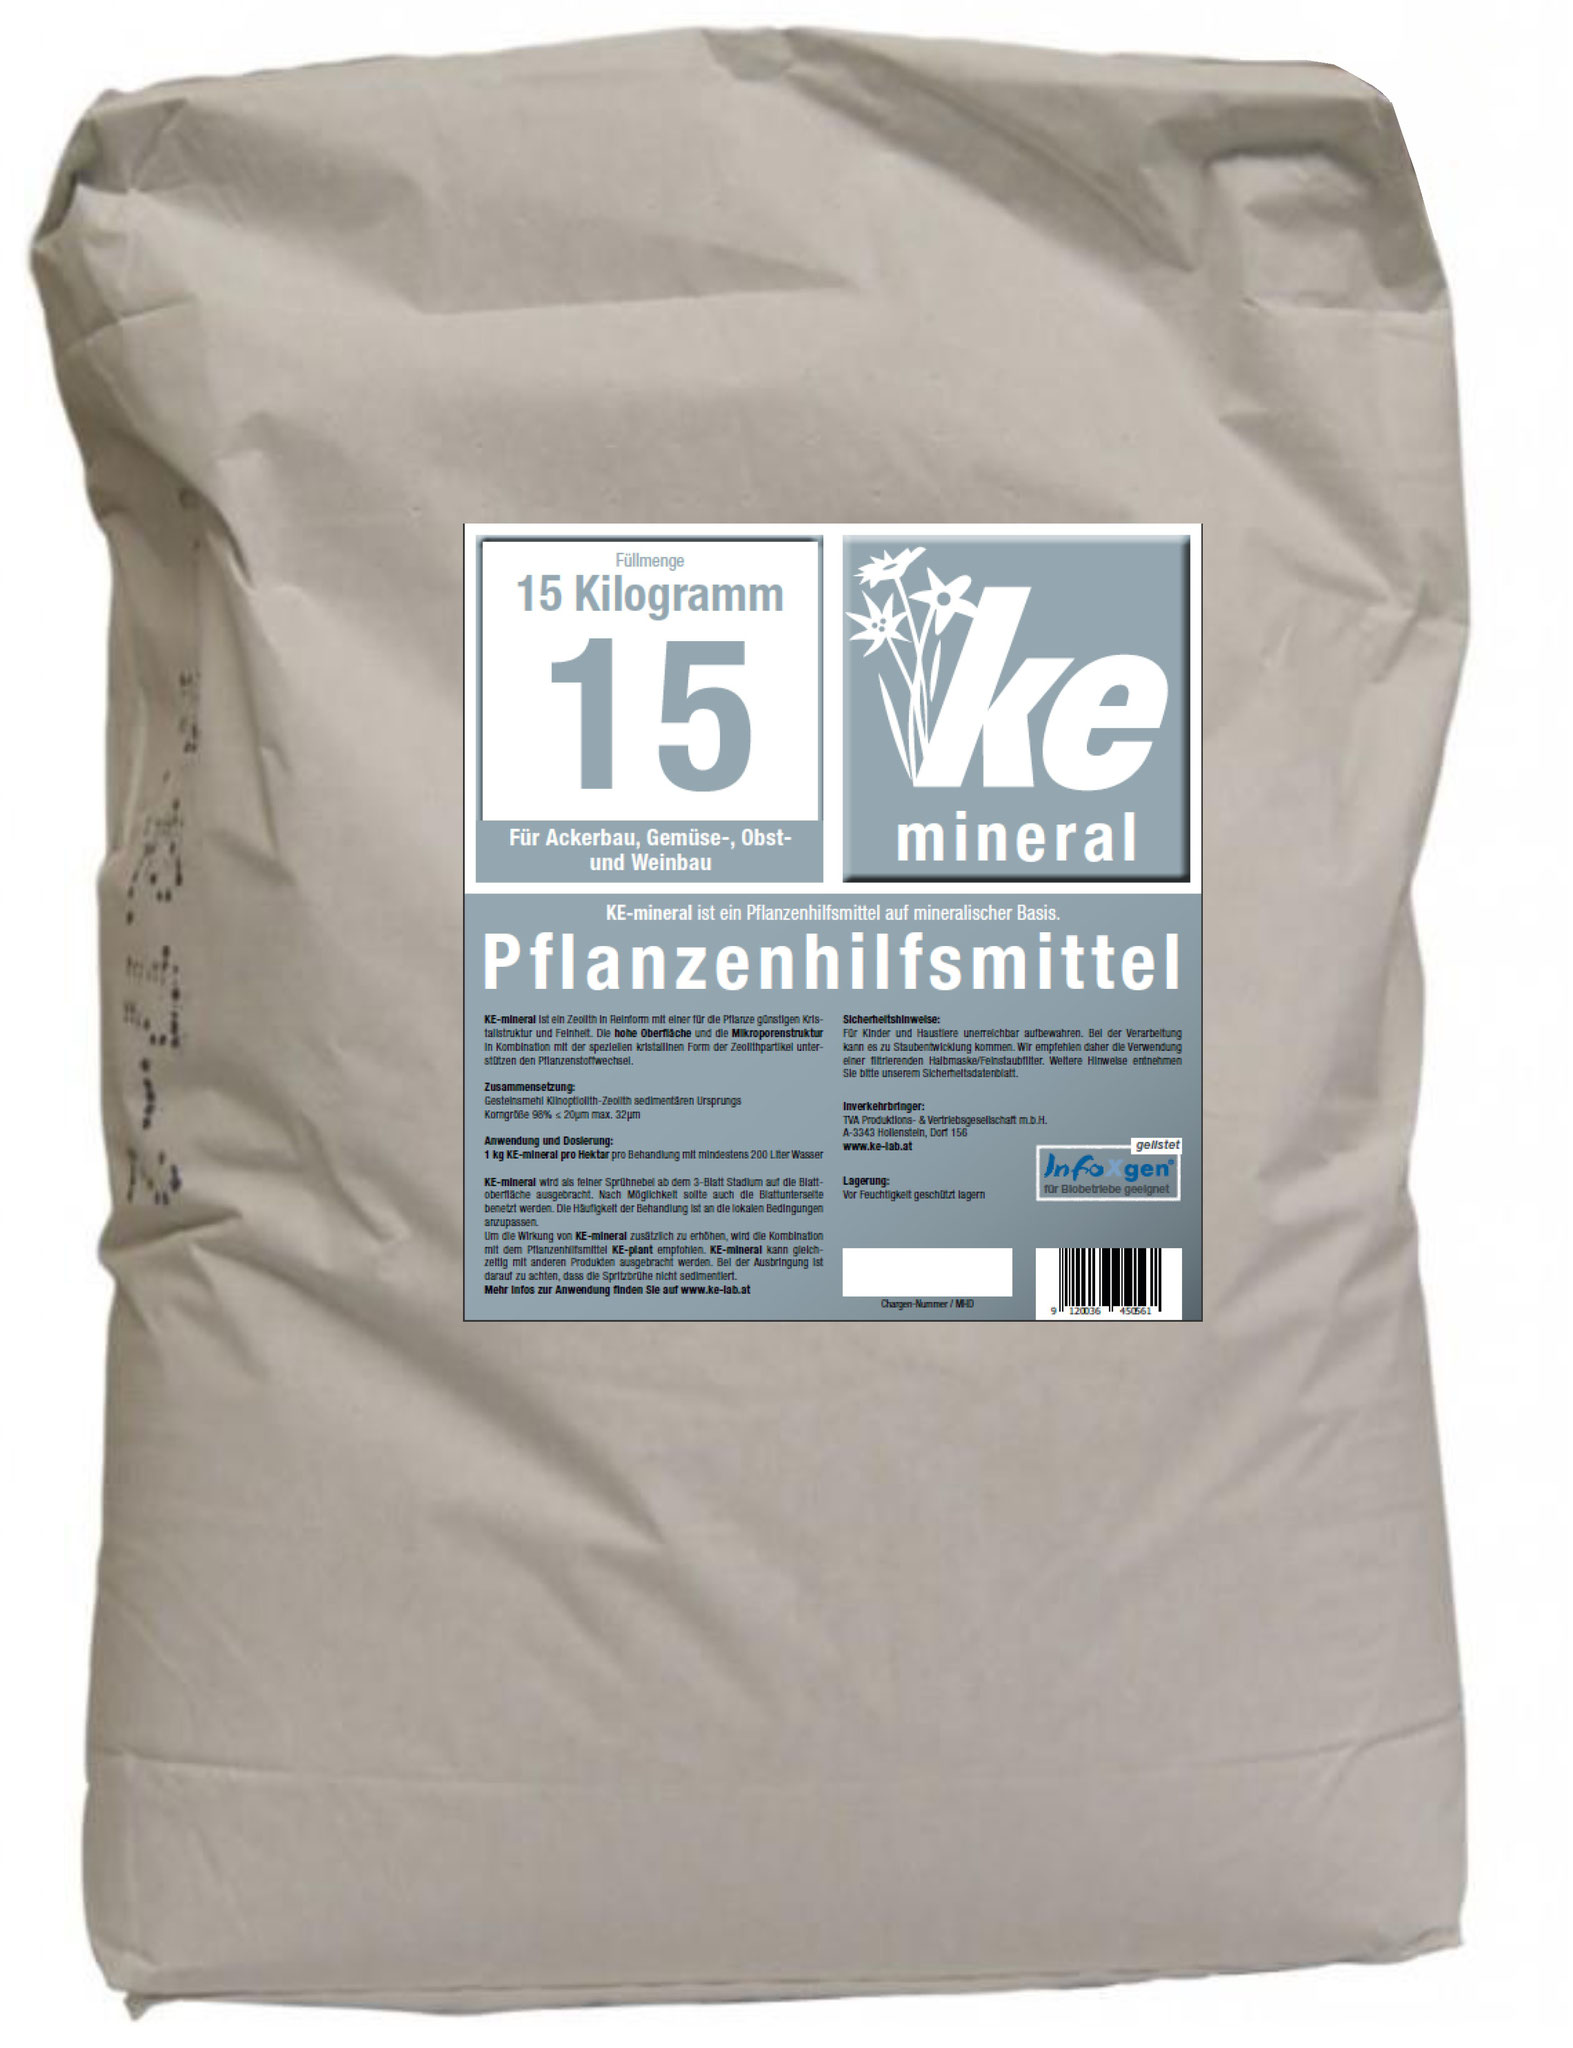 KE-mineral in 15 kg bag